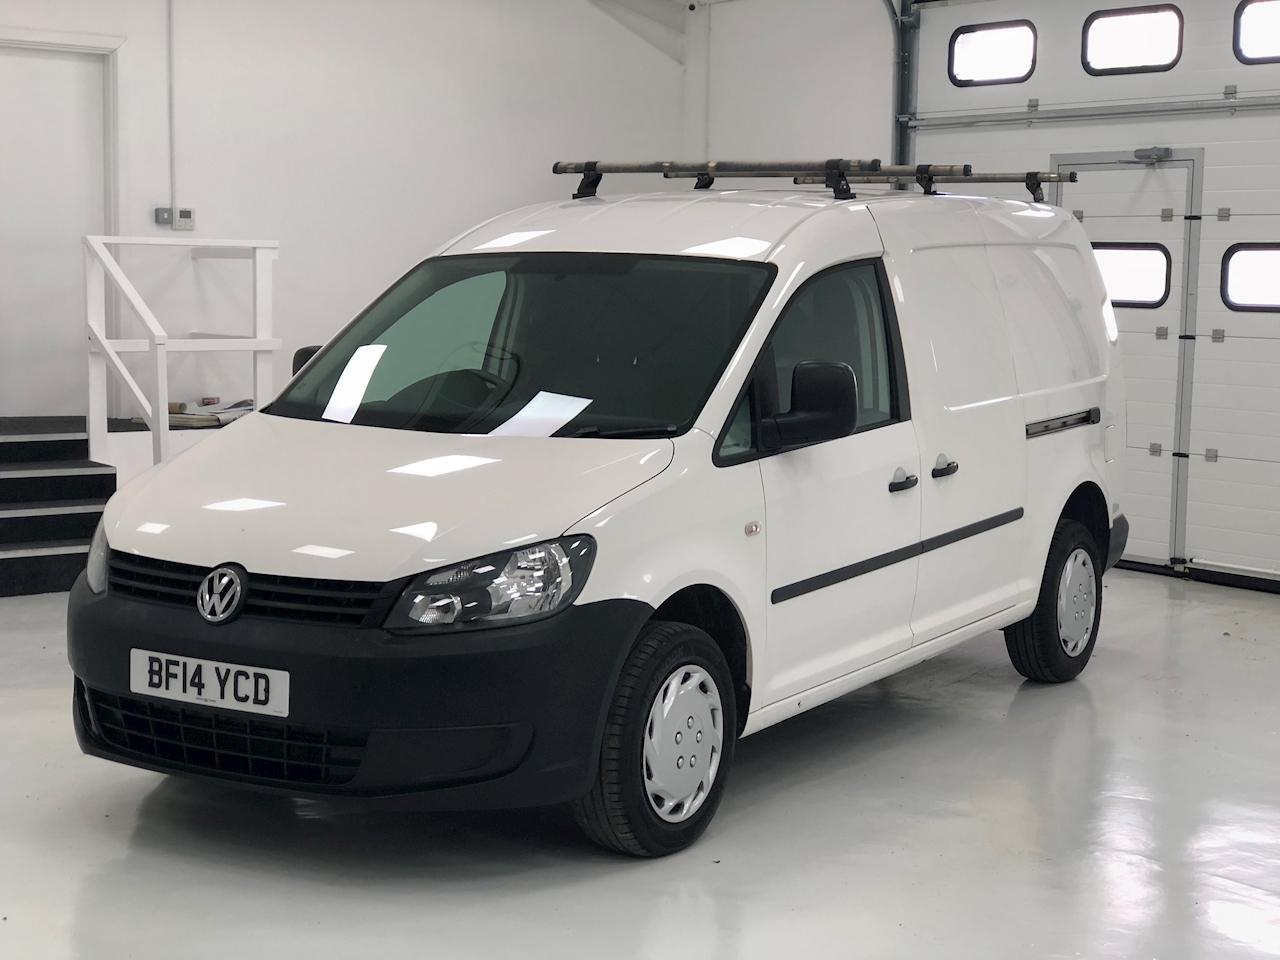 Volkswagen Caddy Maxi C20 Maxi Startline Panel Van 1.6 Manual Diesel